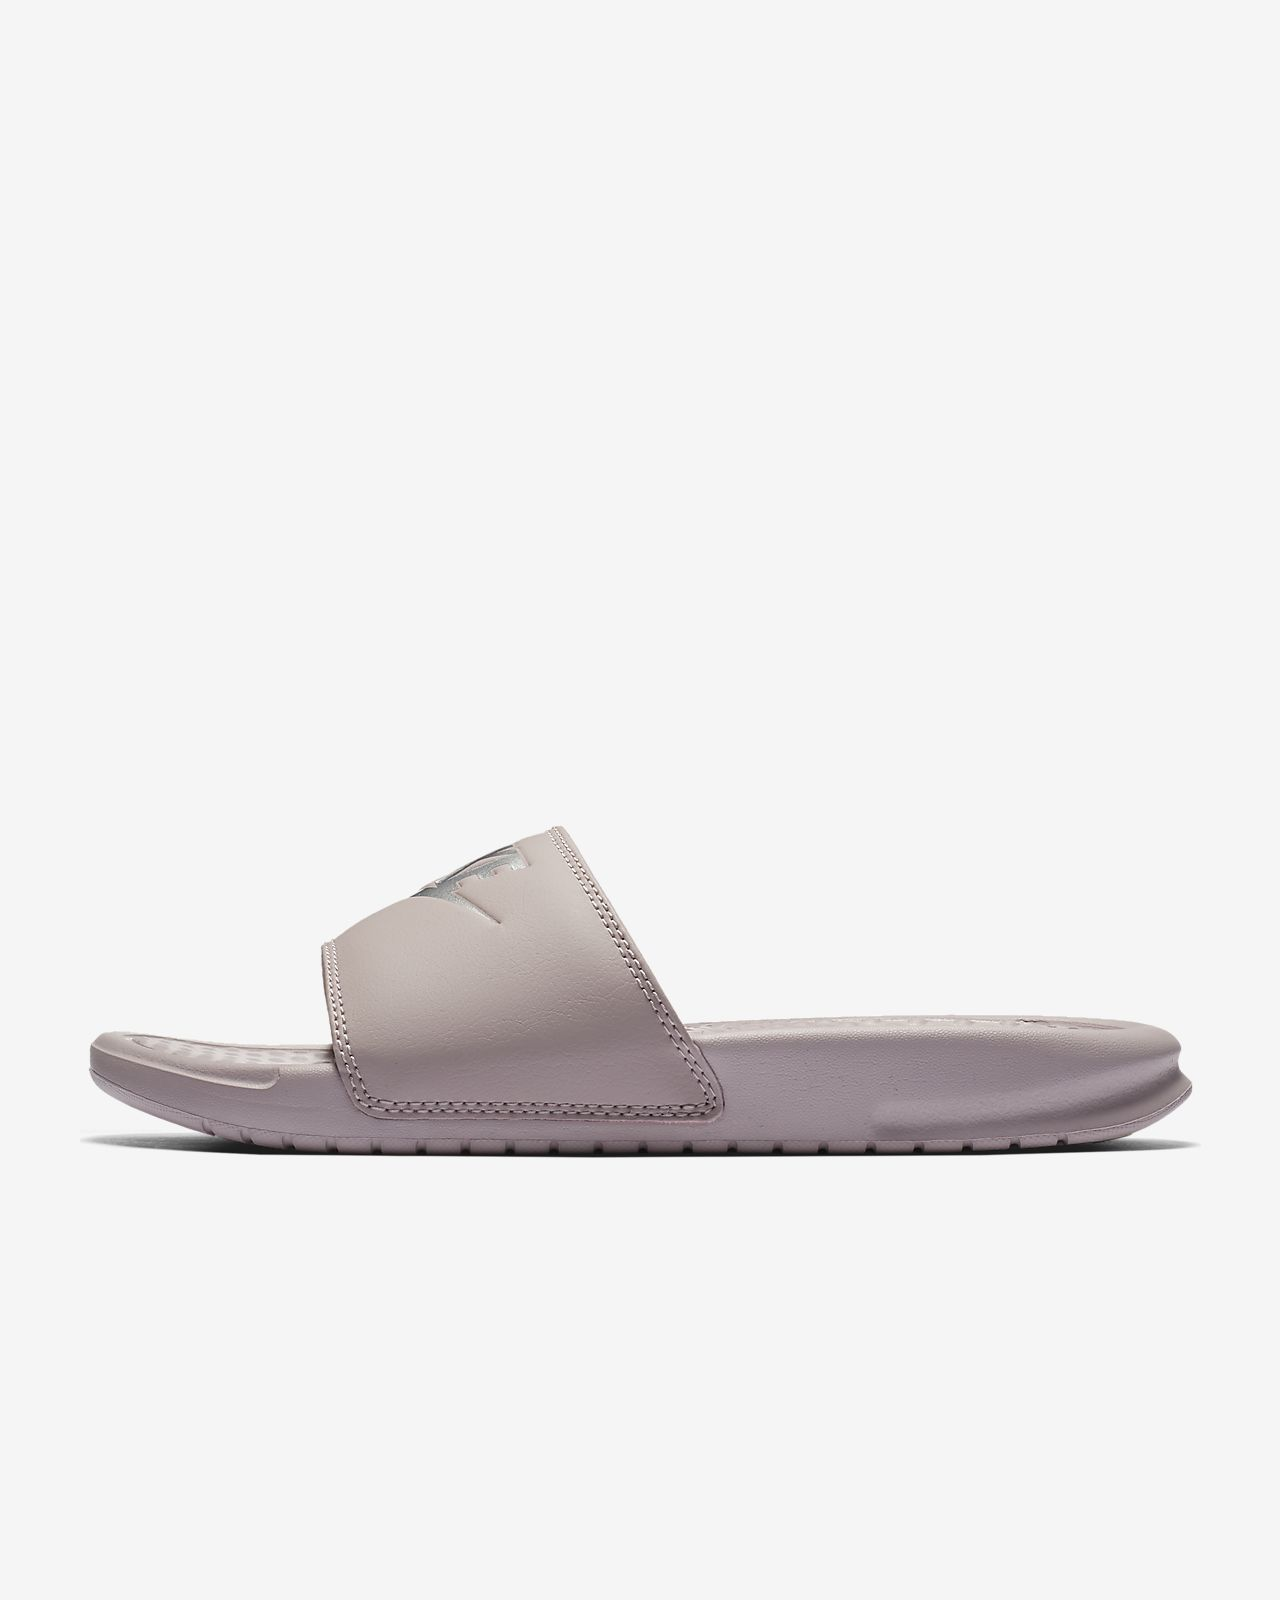 b008675f1da7 Low Resolution Nike Benassi Women s Slide Nike Benassi Women s Slide